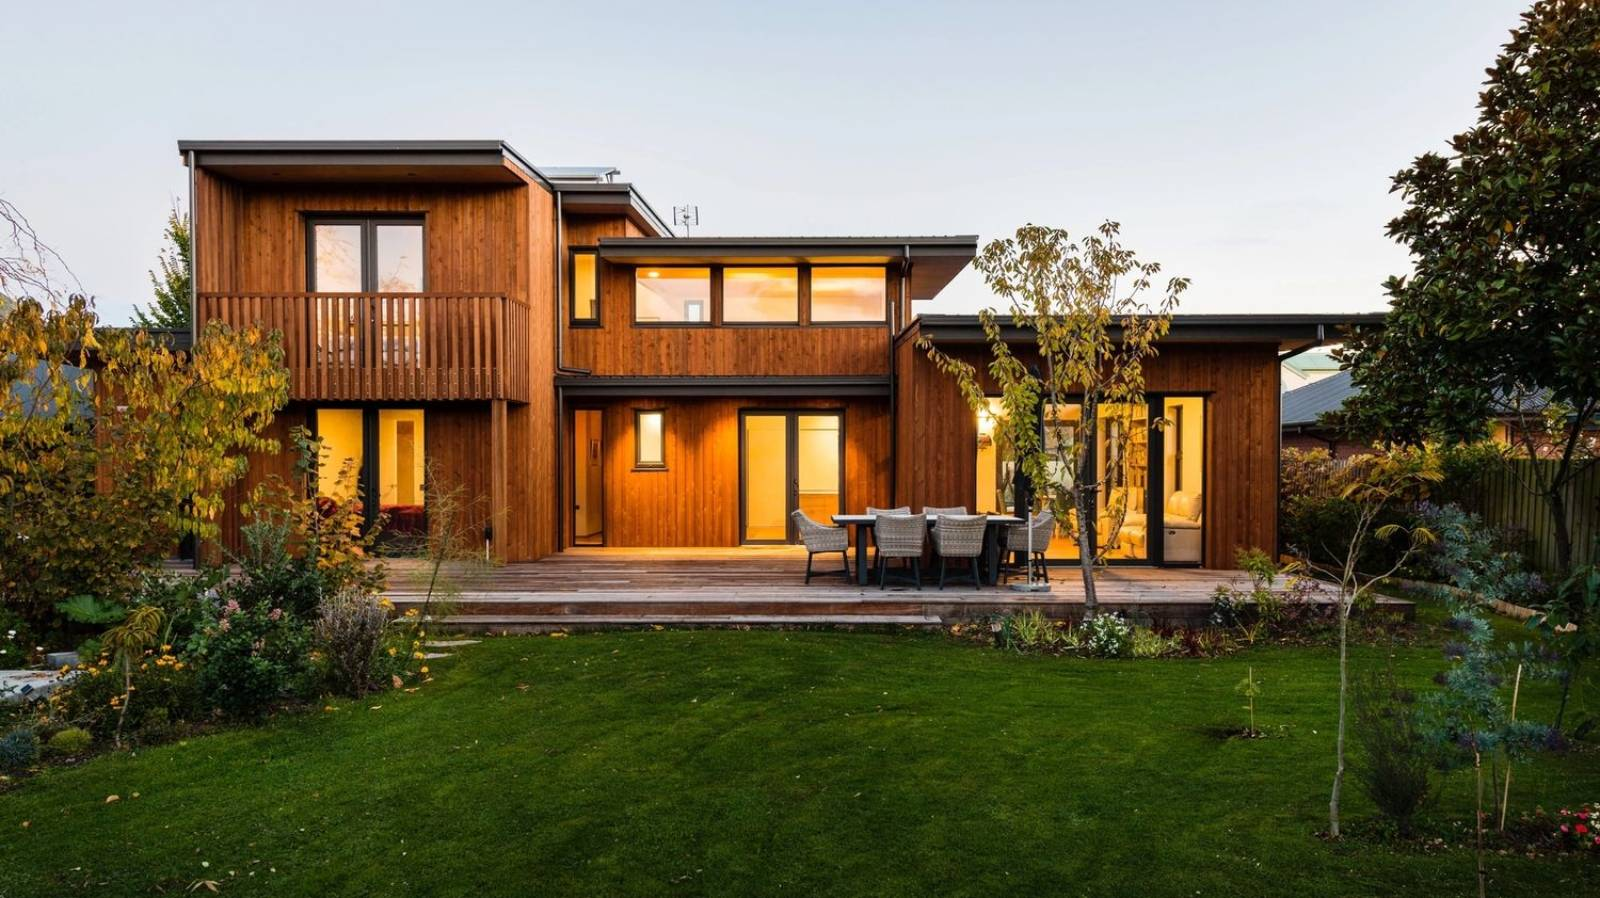 How to find an eco-friendly home builder